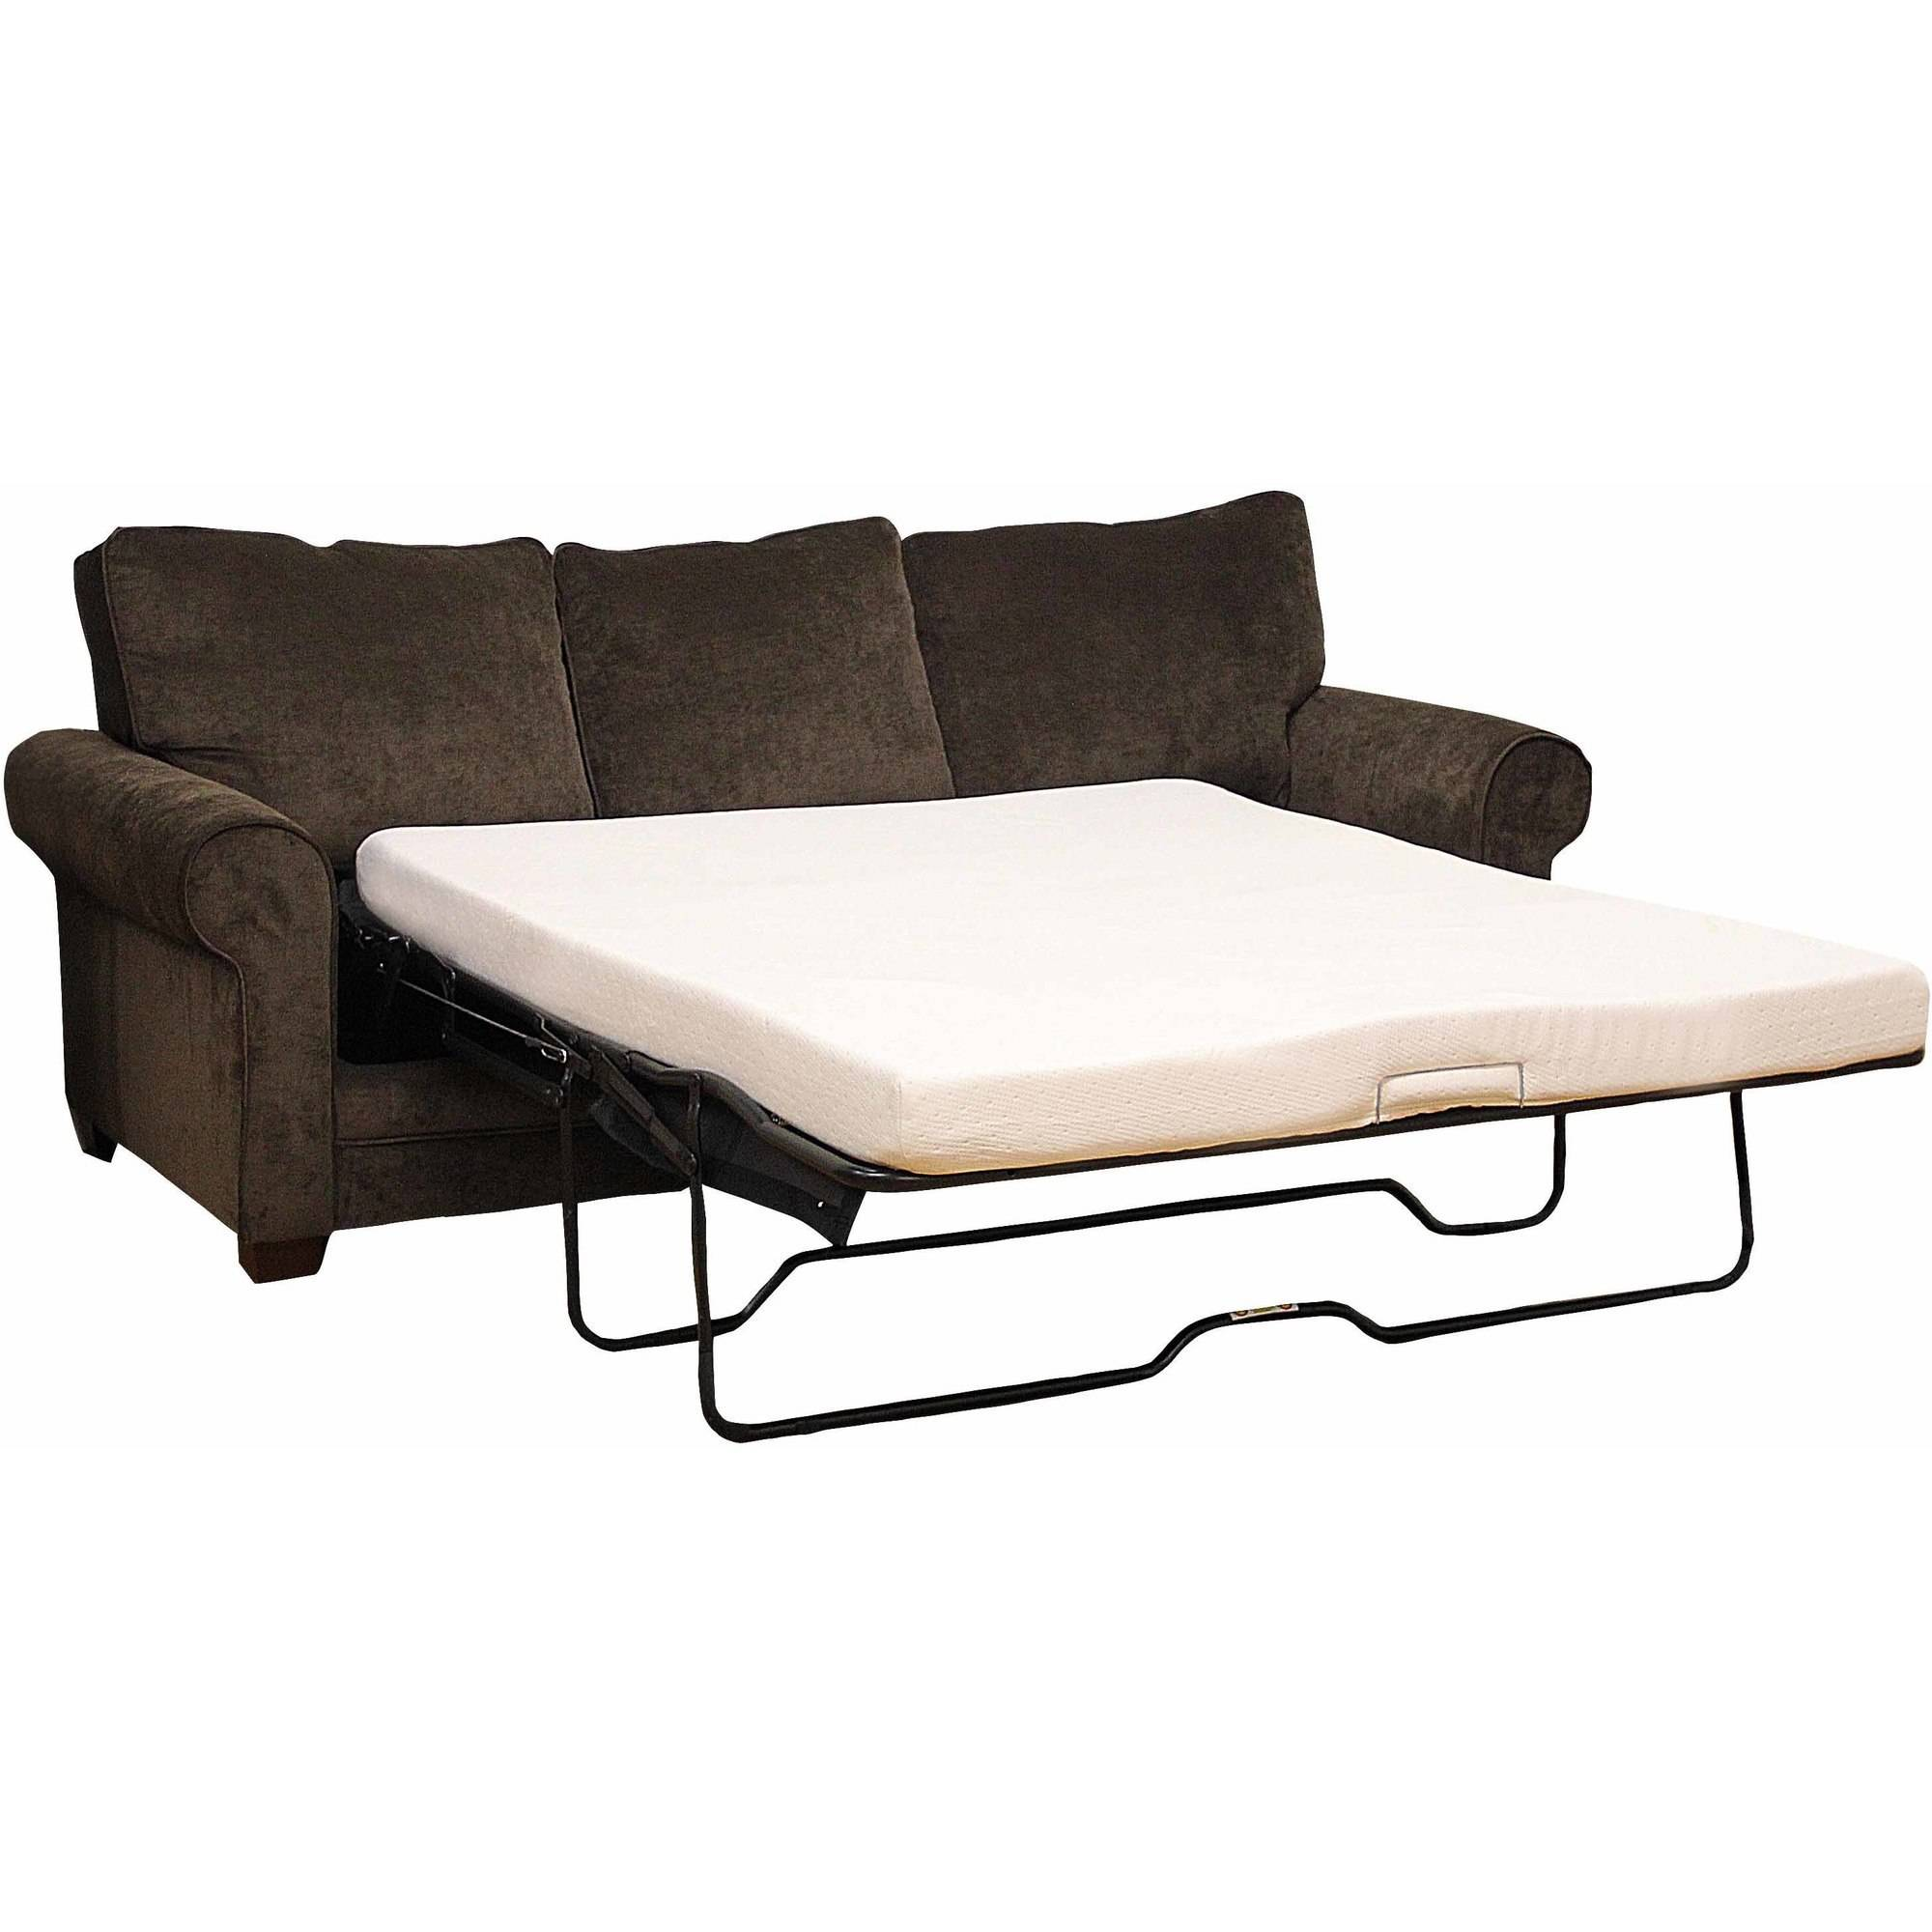 number item with out couch and holders mark sofa products crown pull cup adjustable bed easton